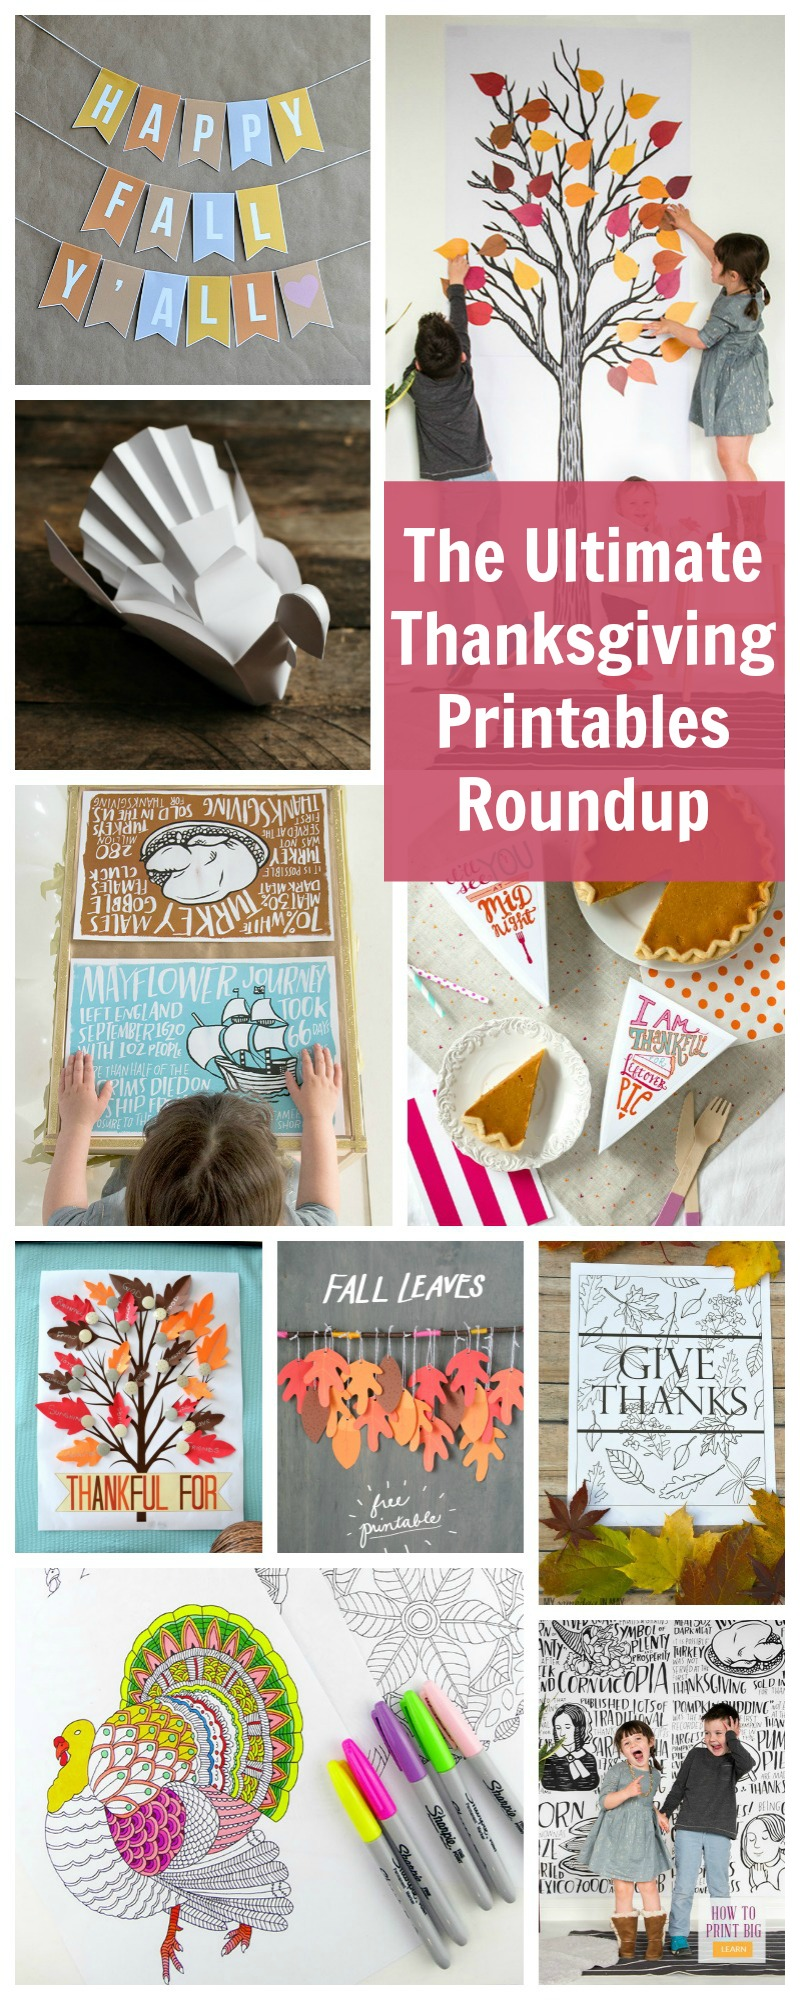 so many great downloads and printables, everything you need to decorate and keep kids entertained for Thanksgiving